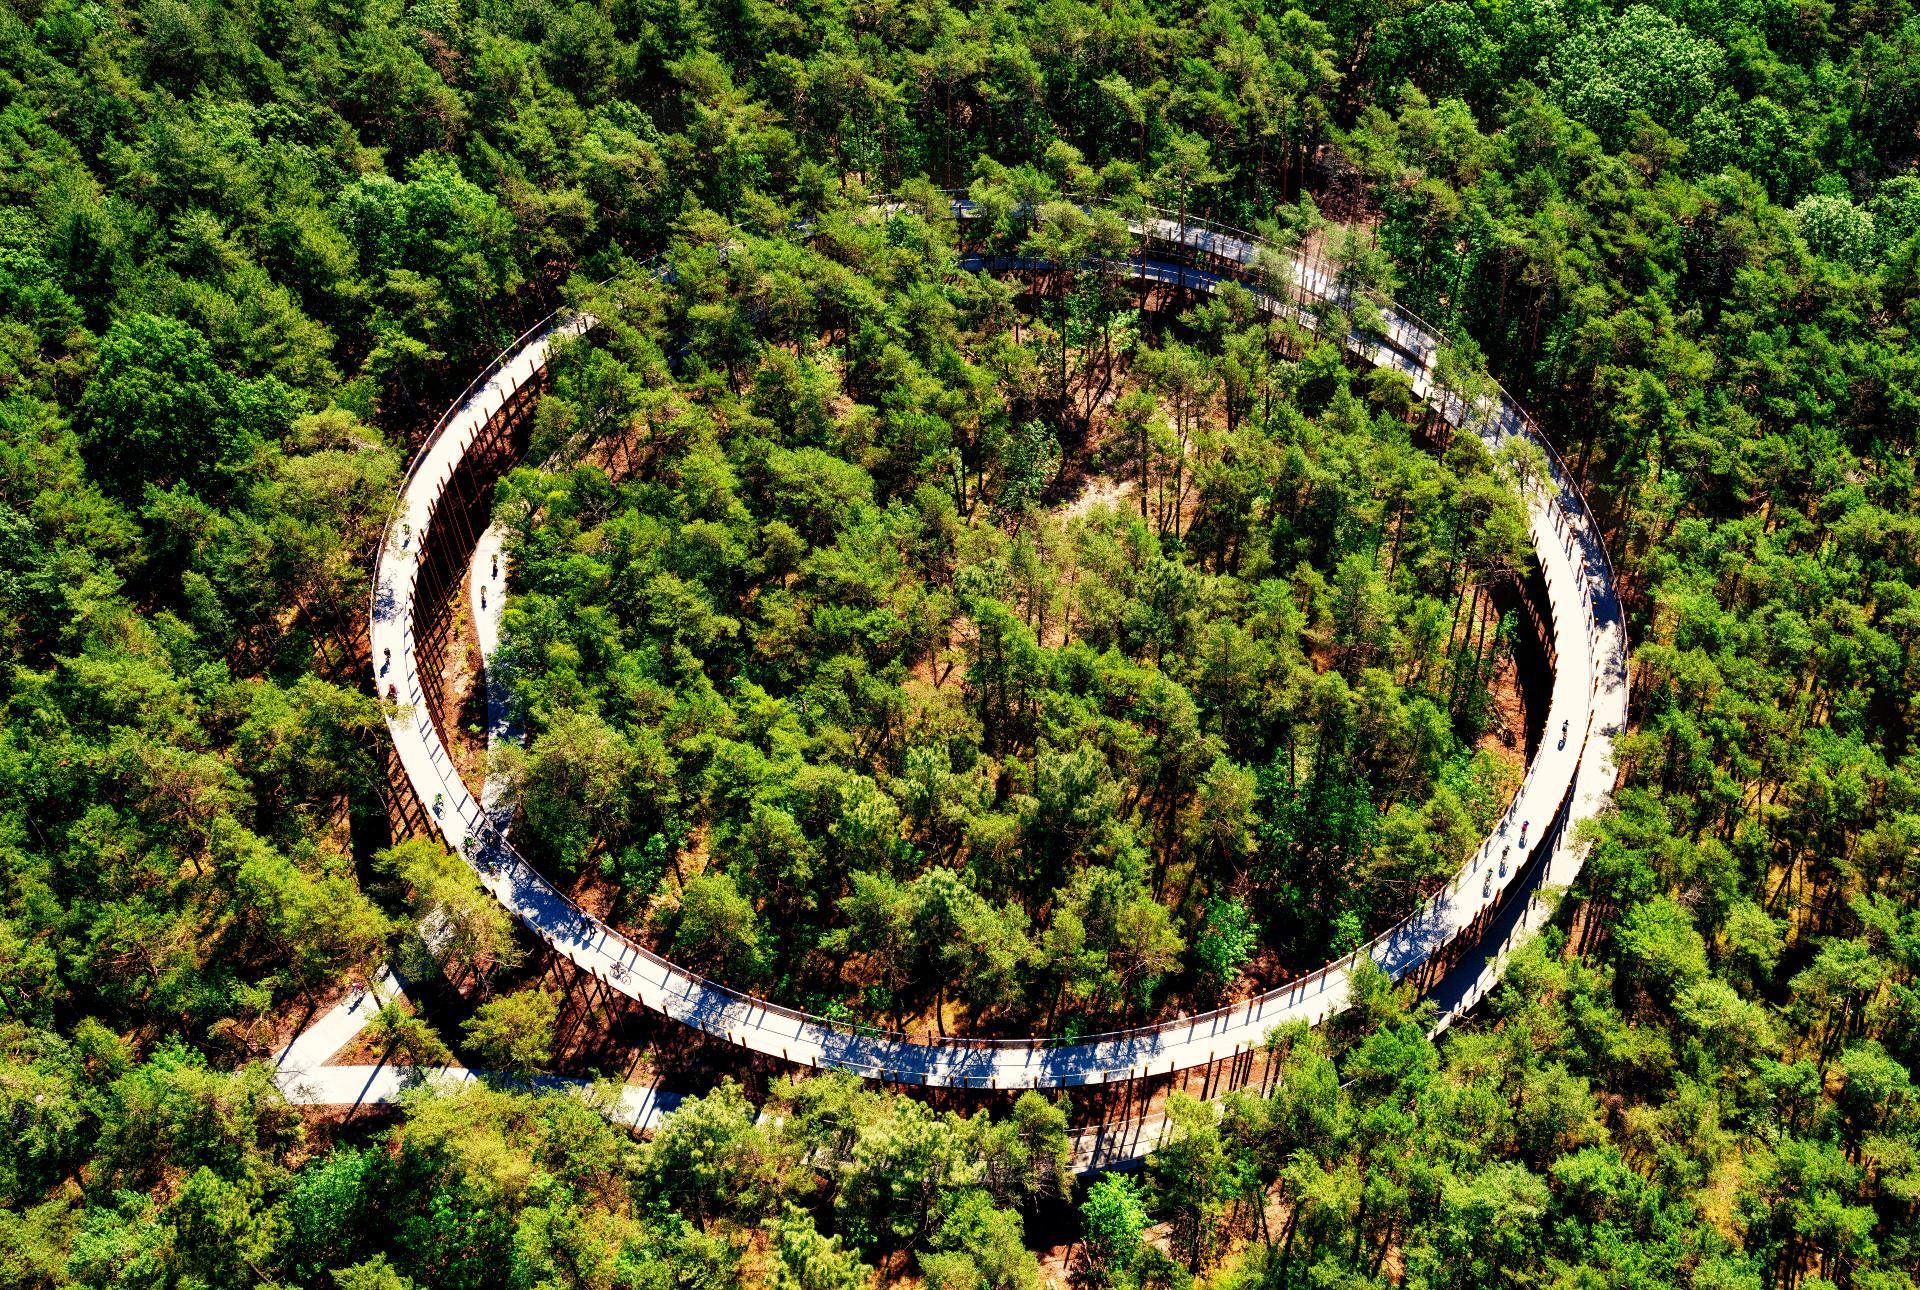 Cycle through the treetops on this spectacular new bike path